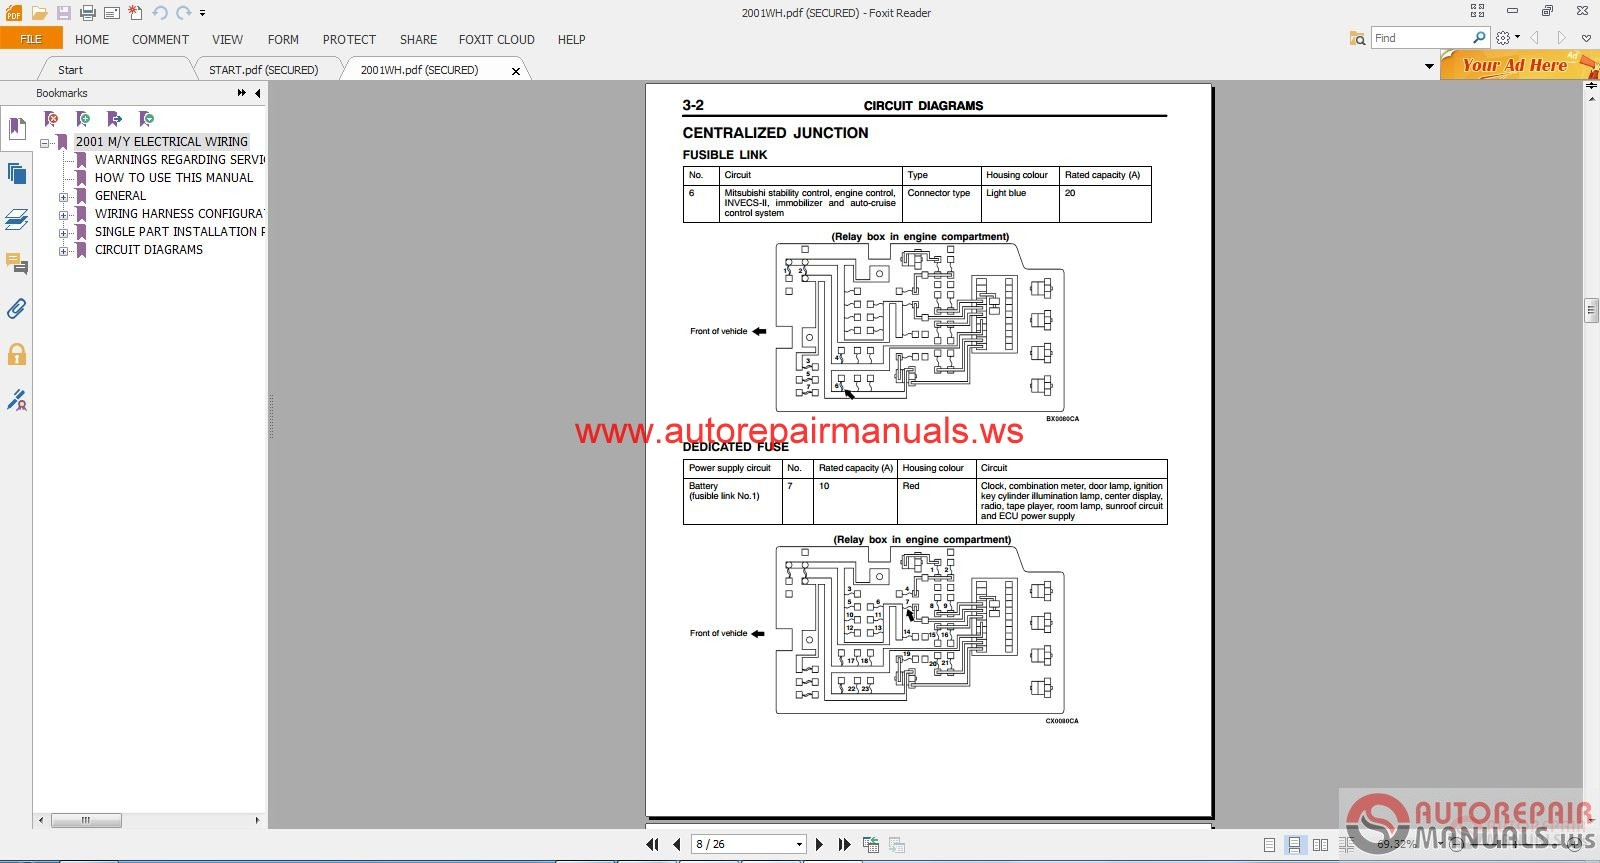 DIAGRAM] Mitsubishi Pajero 2003 Wiring Diagram FULL Version HD Quality Wiring  Diagram - GOOSENECKWIRINGDIAGRAM.TRIESTELIVE.ITWiring And Fuse Image